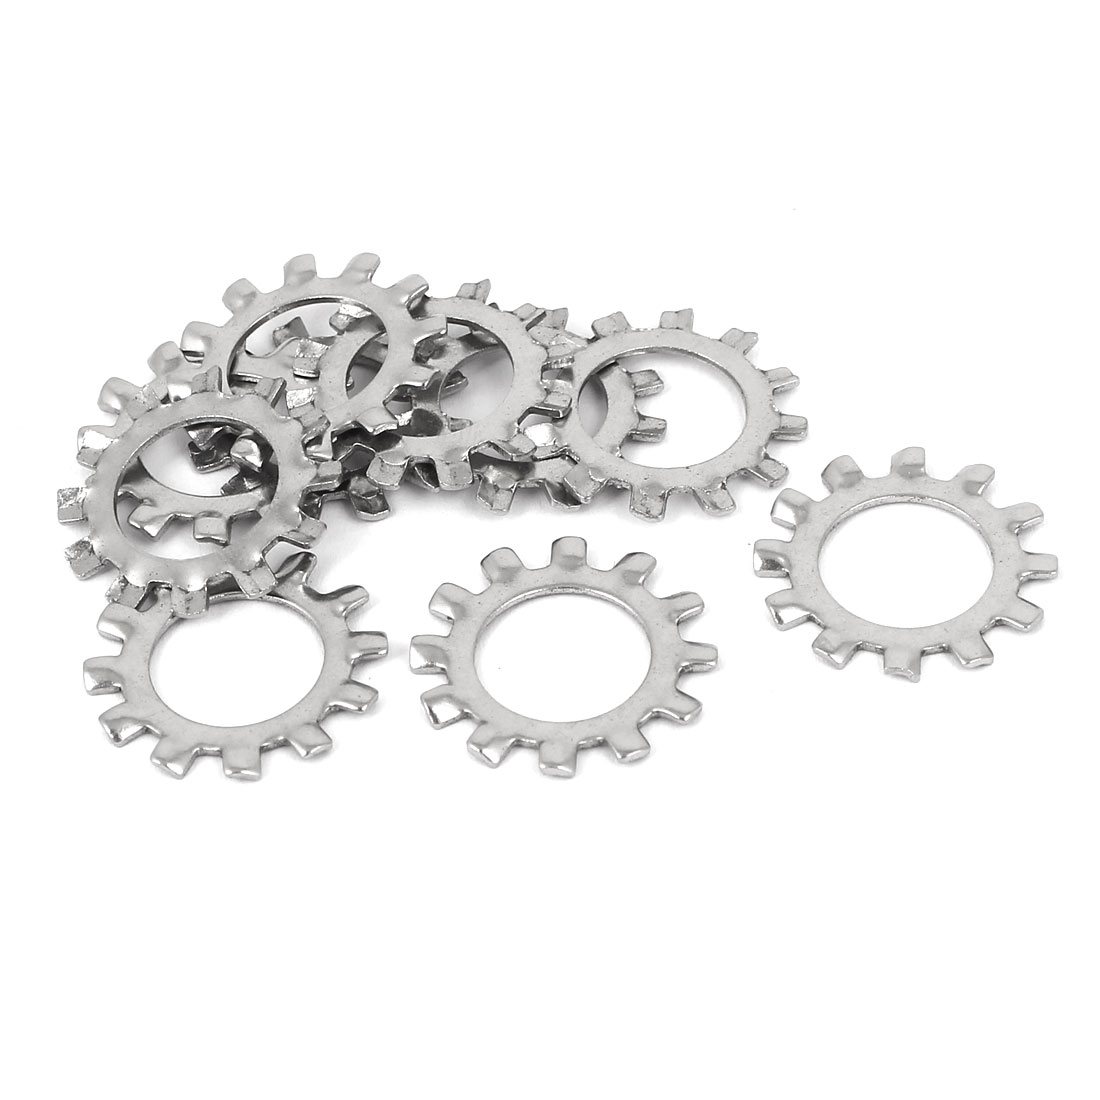 M12 304 Stainless Steel External Star Lock Washers 10 Pcs